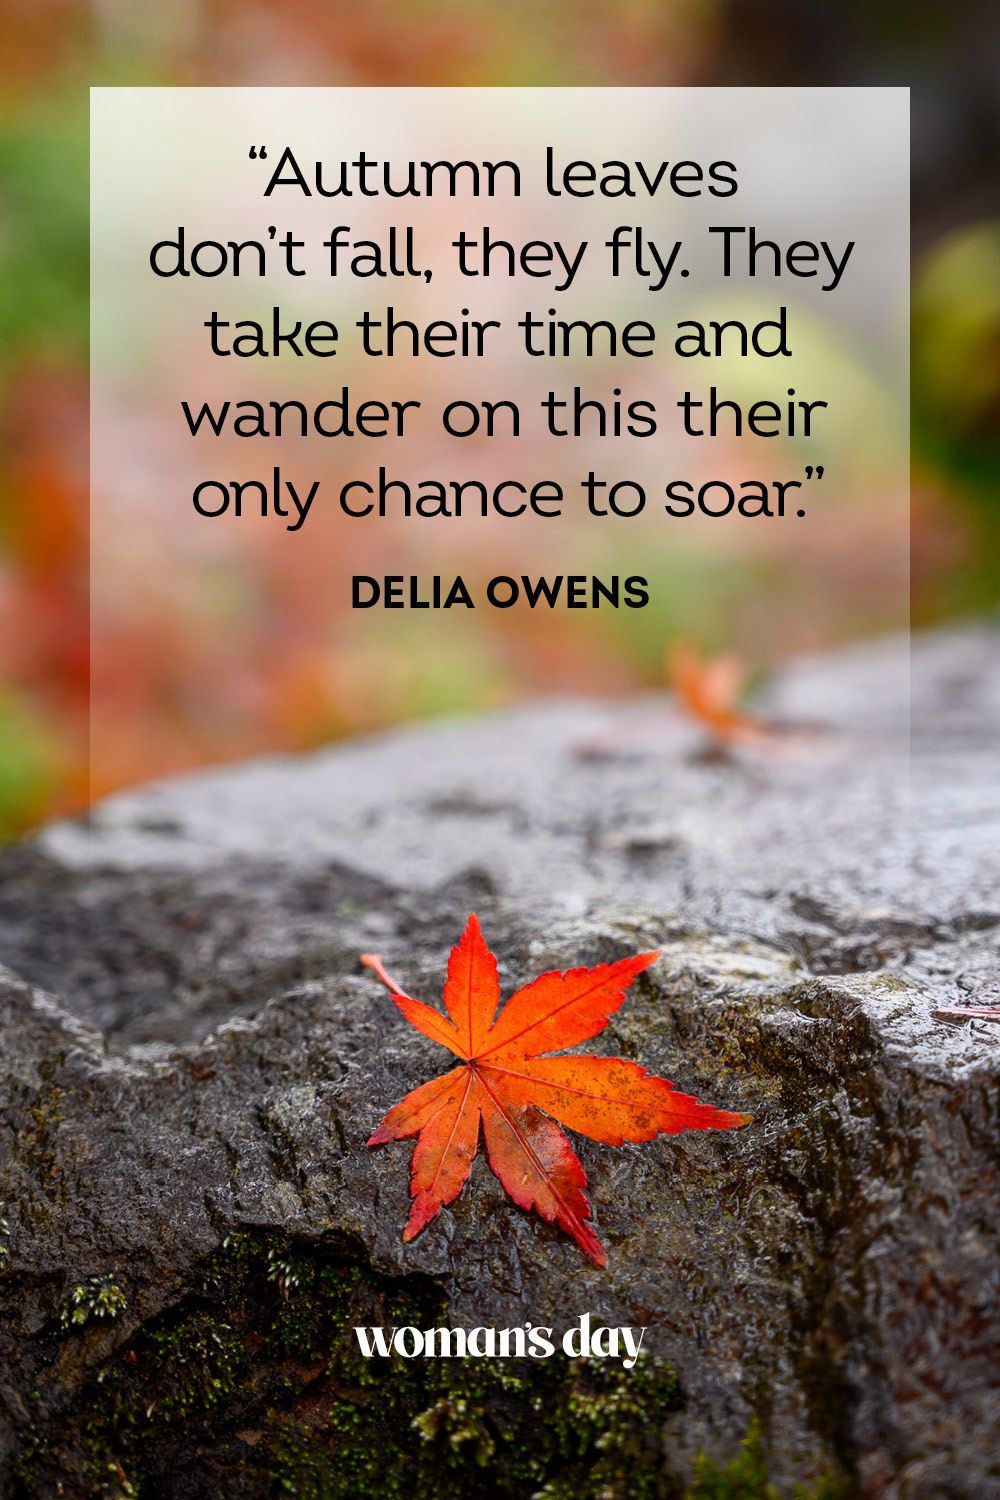 50 Best Fall Quotes 2021 - Inspirational Sayings and Phrases About Autumn